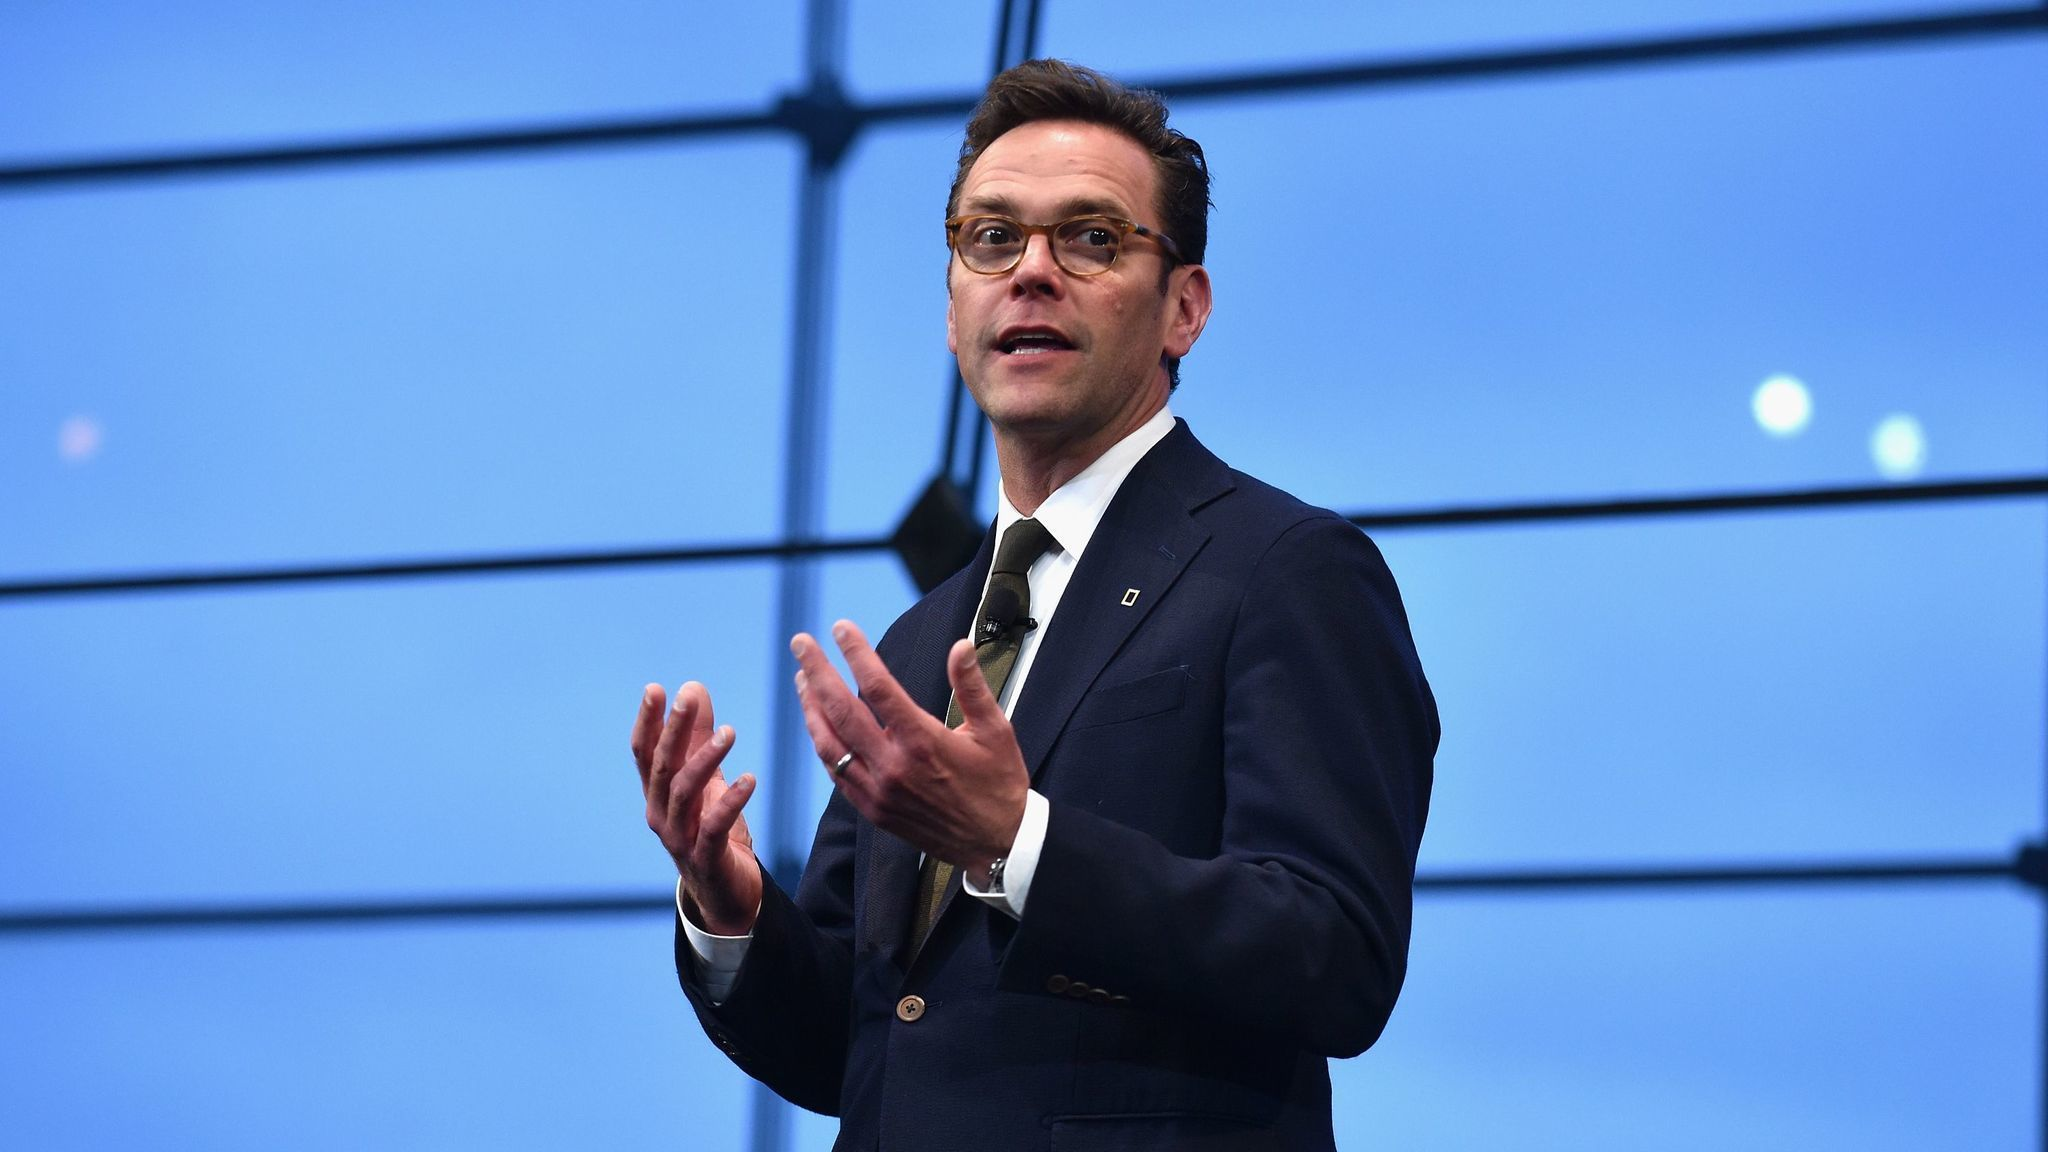 Fox CEO James Murdoch criticizes Trump over response to Charlottesville